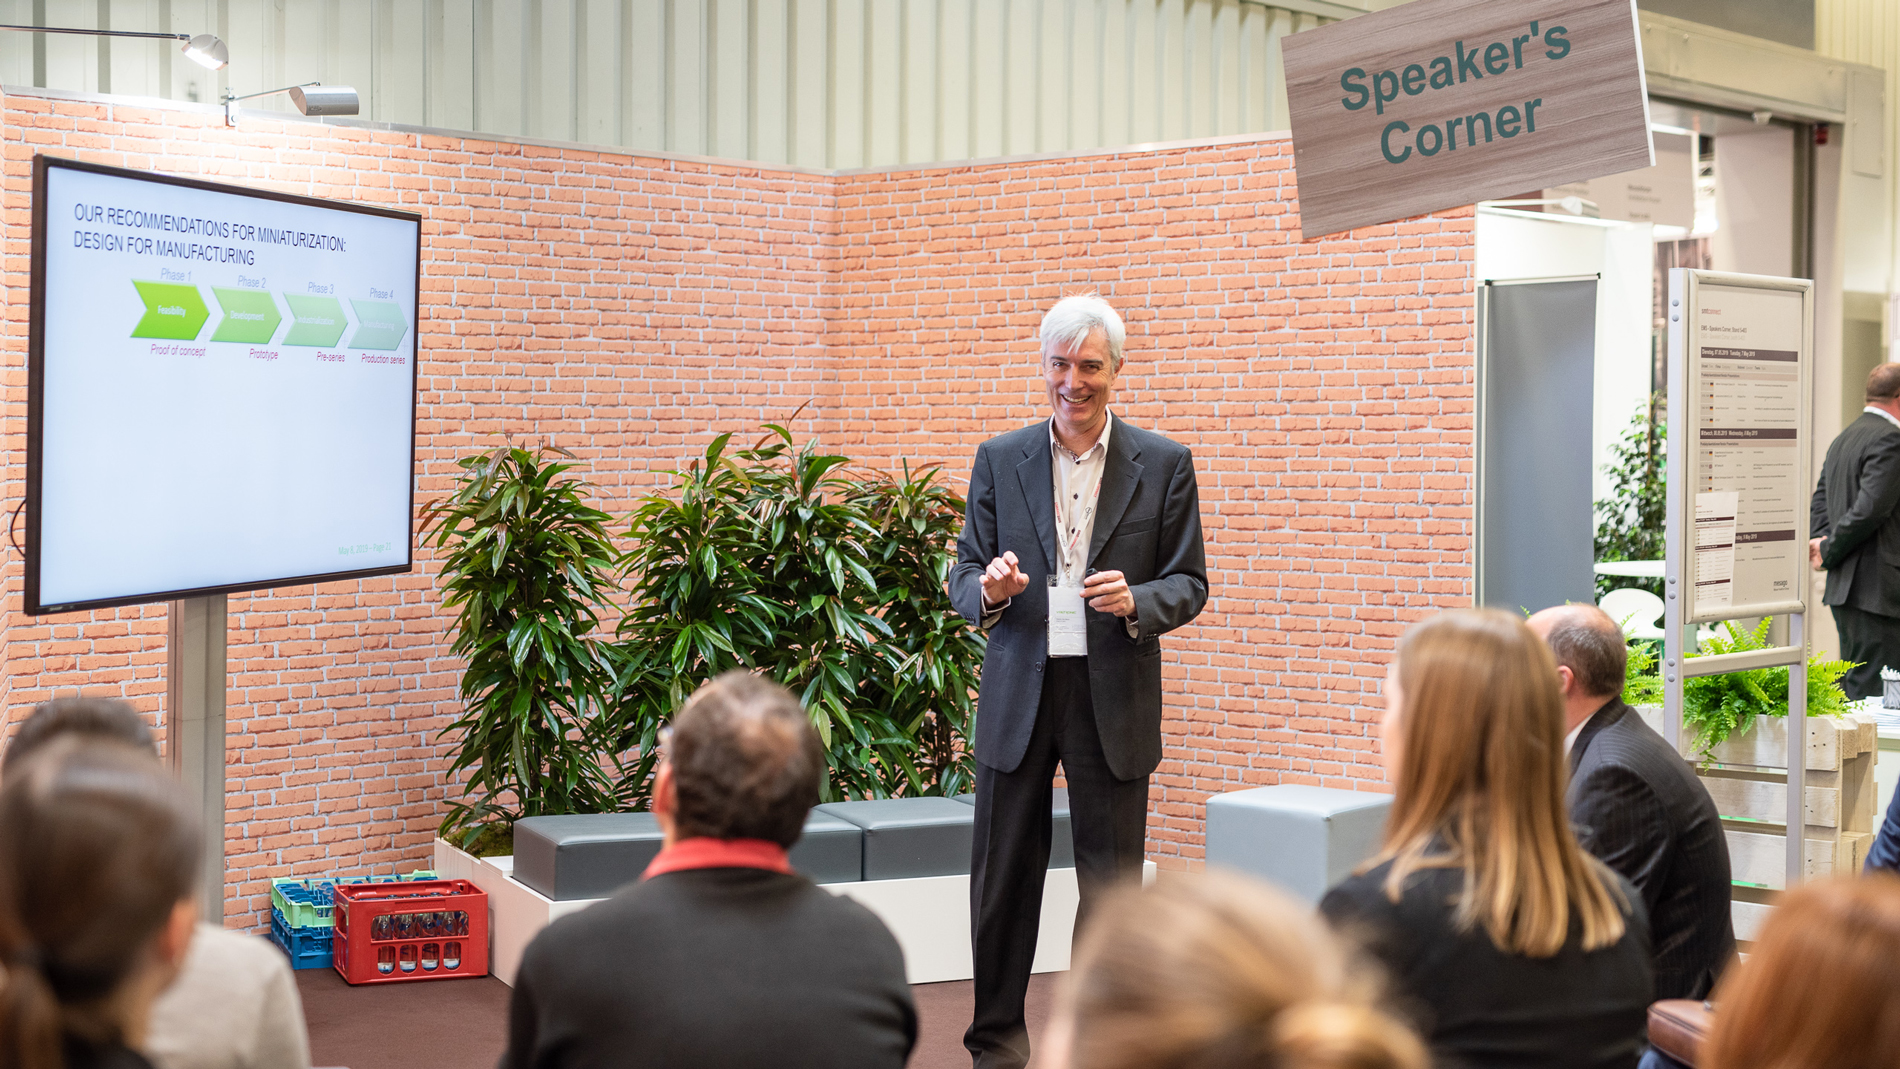 VALTRONIC Technologies (Suisse) SA at the Speakers' Corner